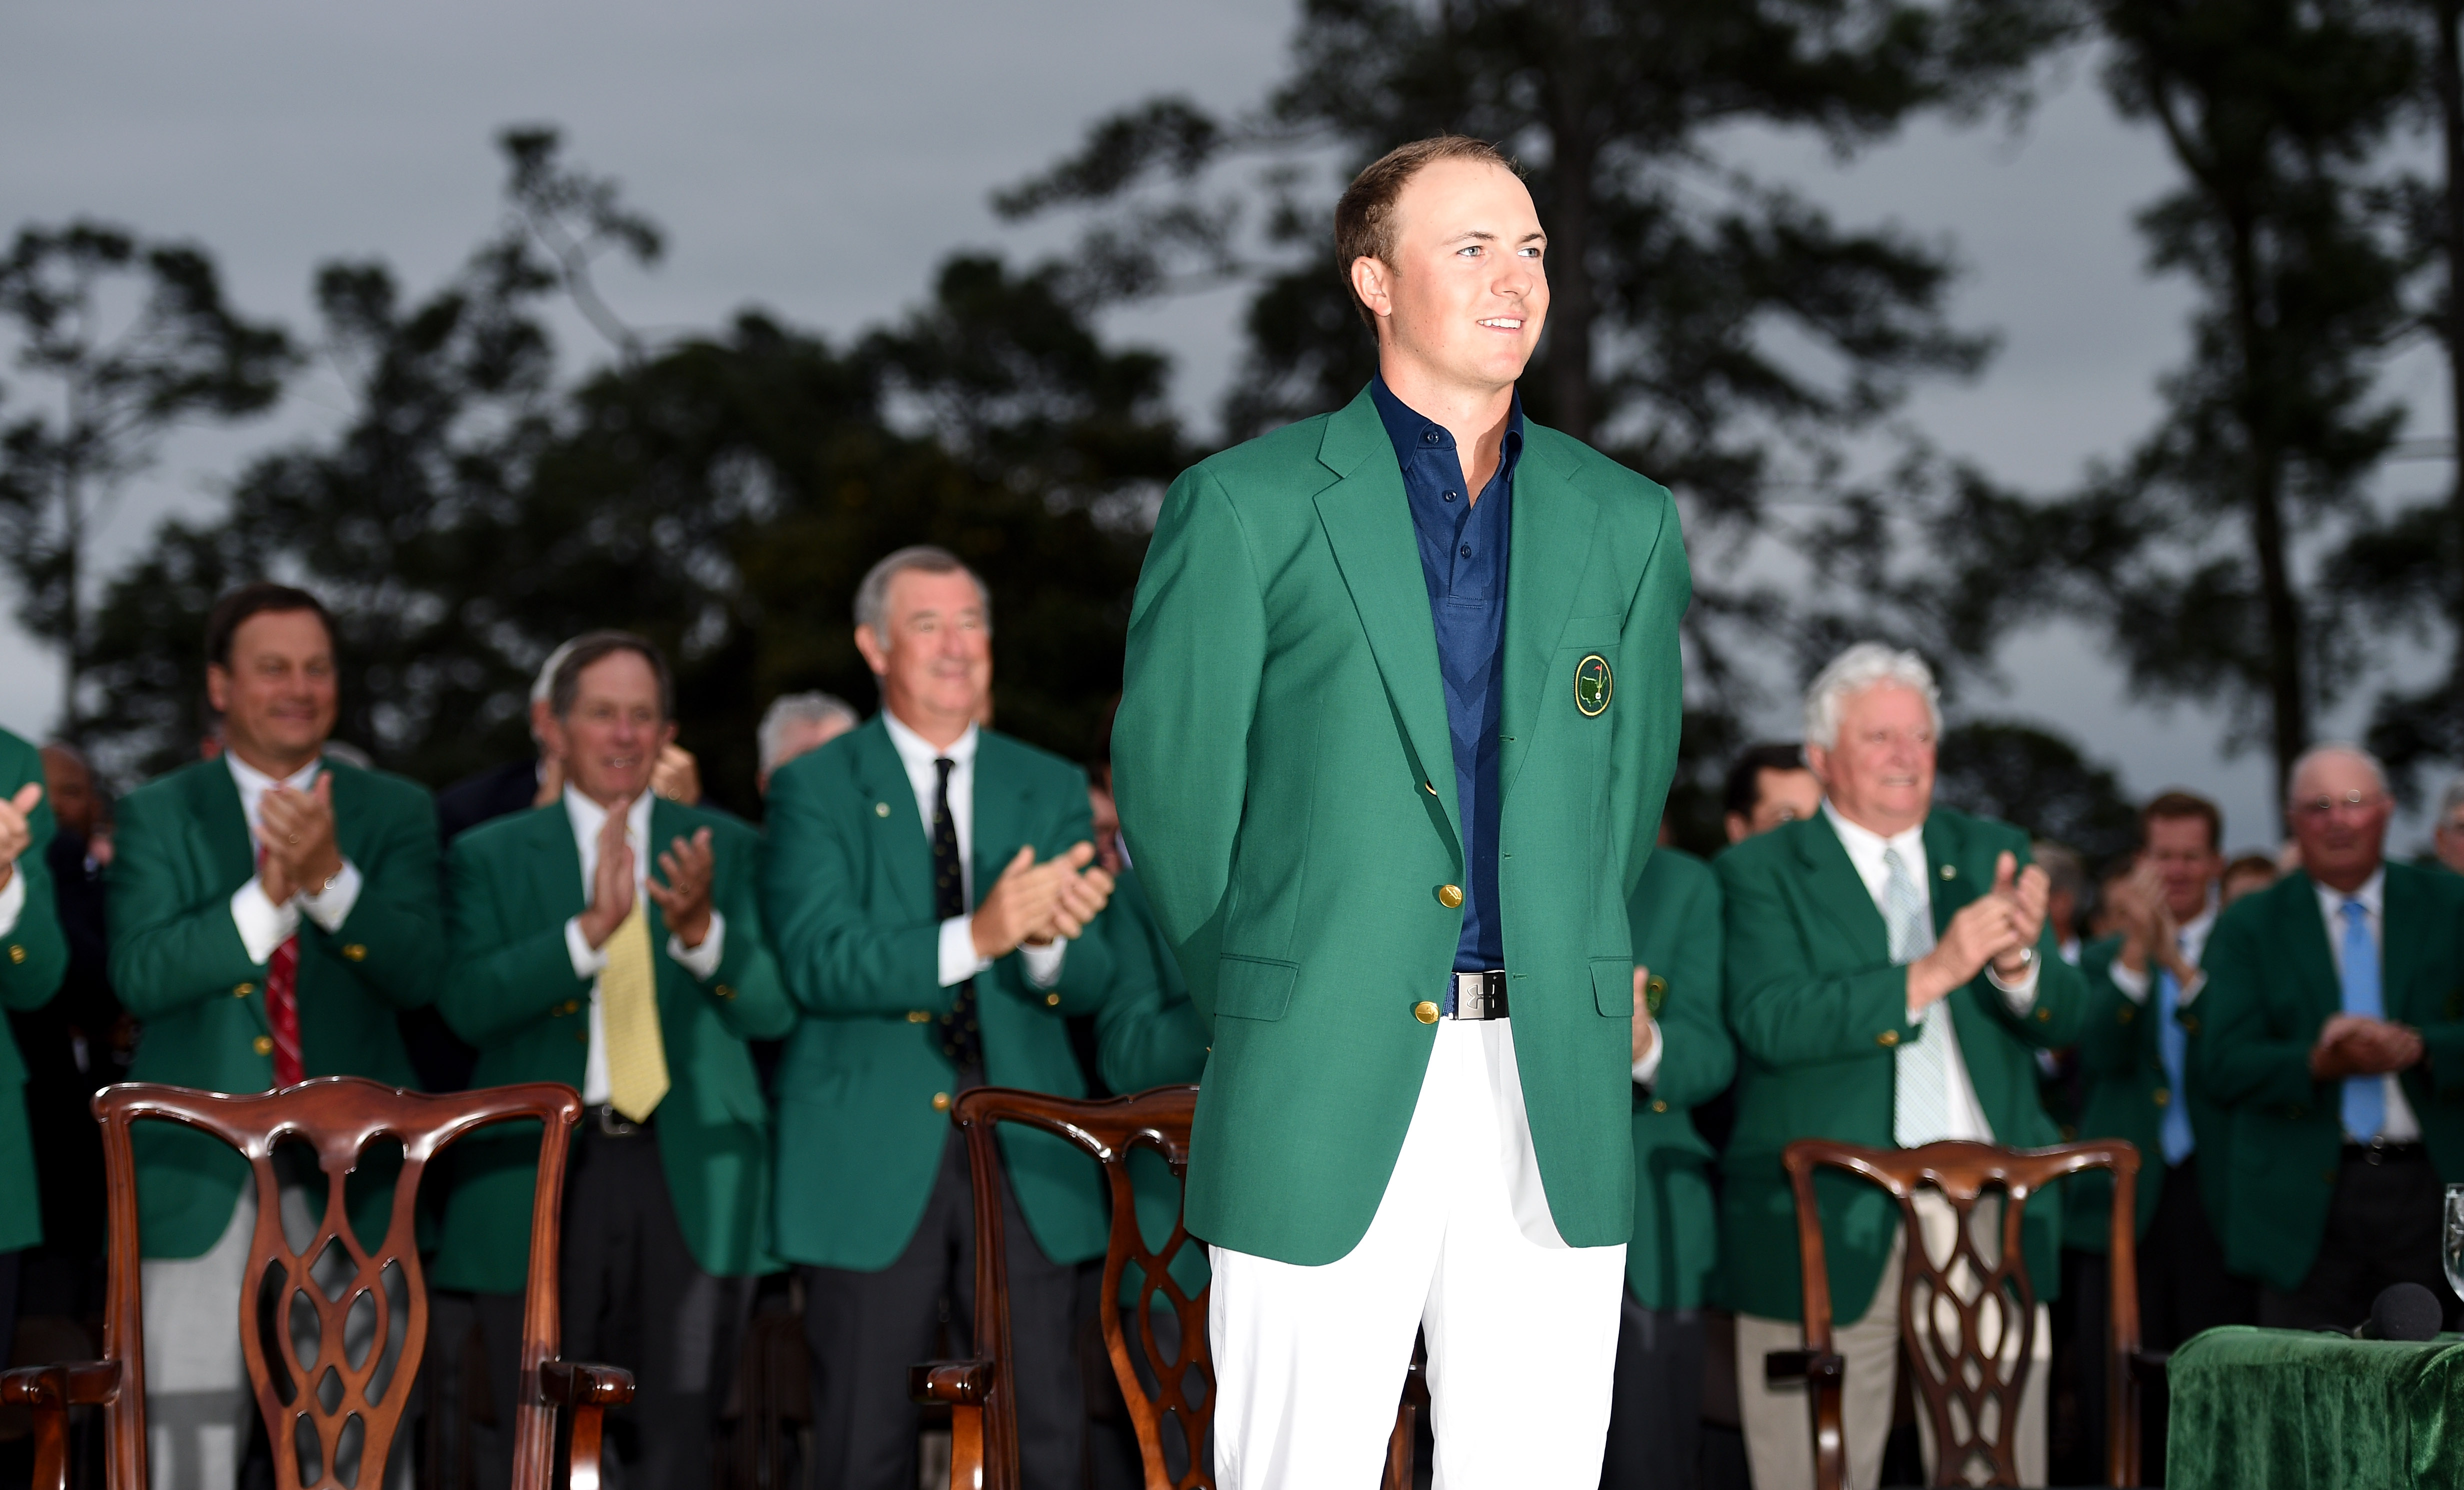 Jordan Spieth has one win and two career second place finishes at Augusta National.